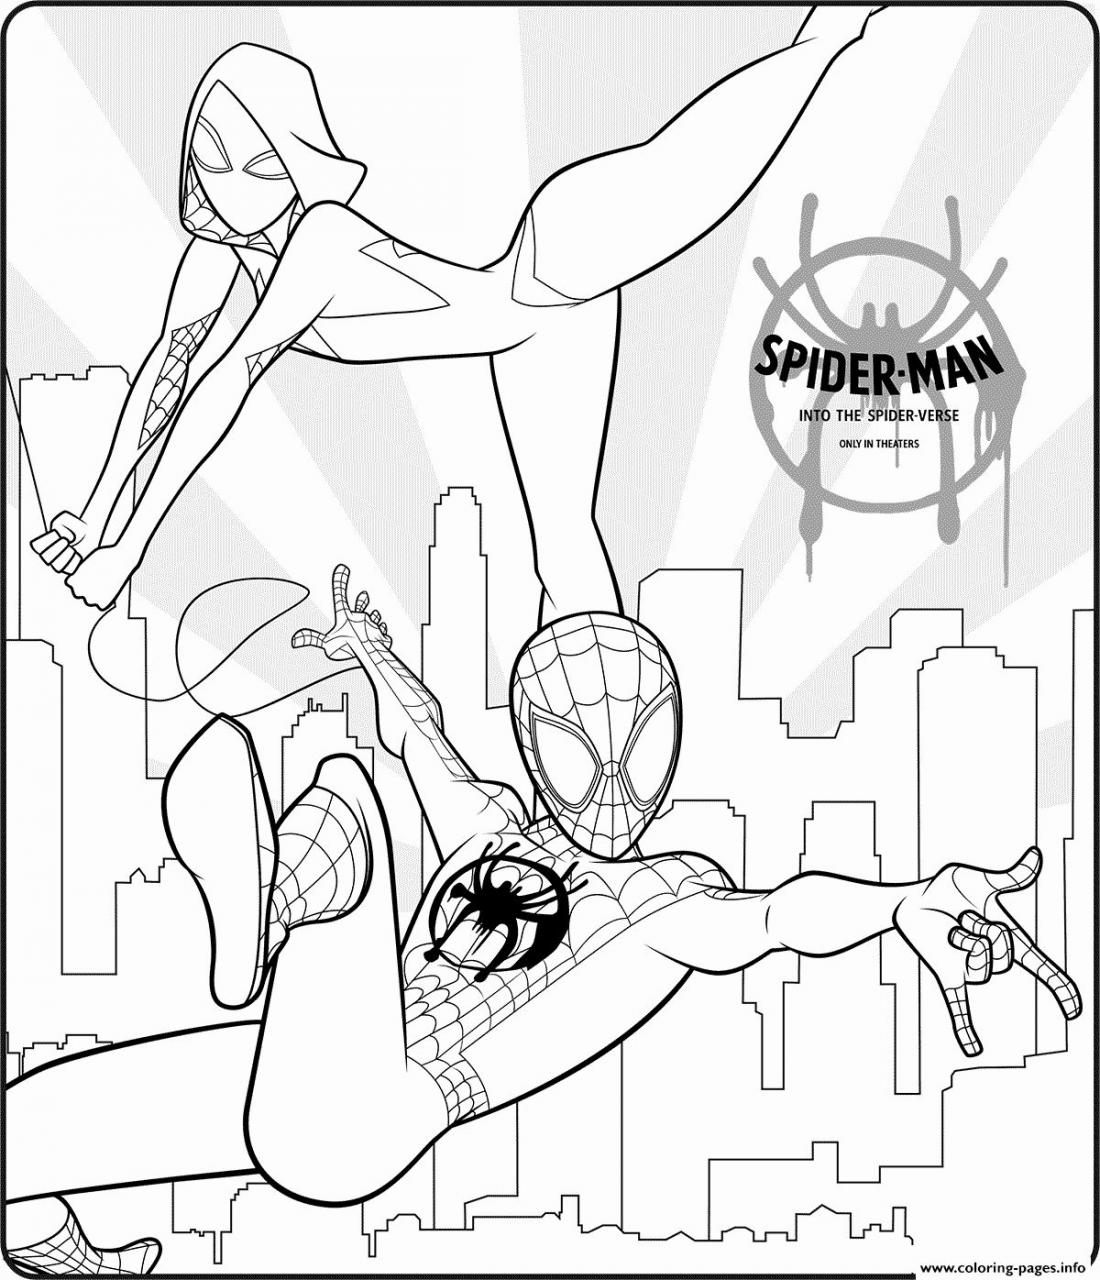 miles morales spiderman coloring page 50 wonderful spiderman coloring pages your toddler will love coloring morales miles page spiderman